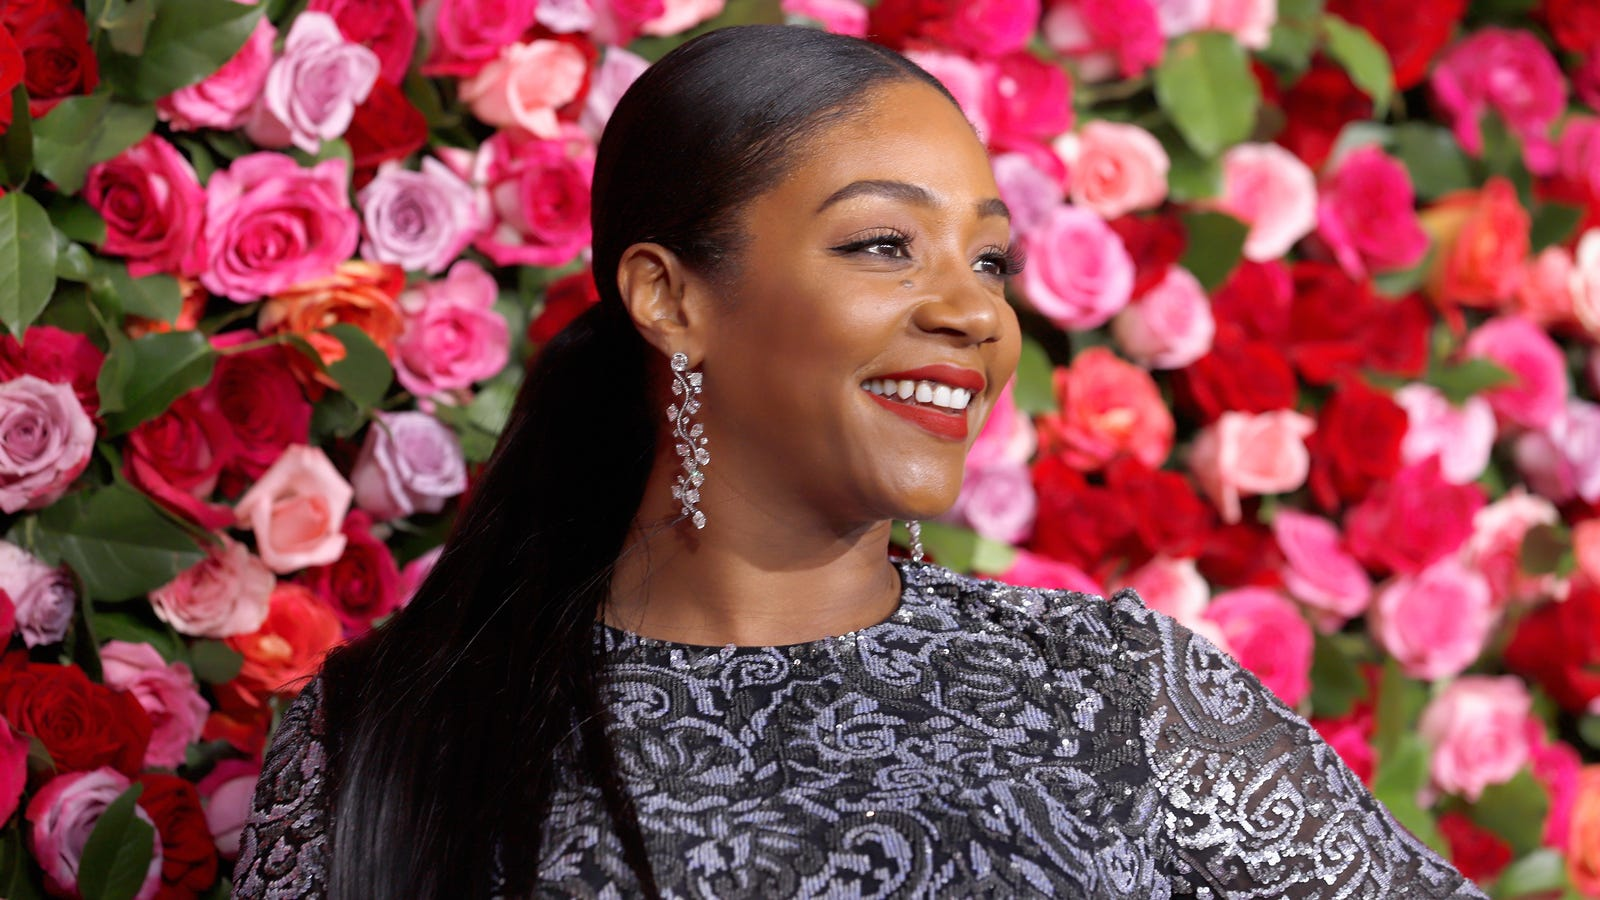 Tiffany Haddish says she knew Roseanne Barr was racist years ago